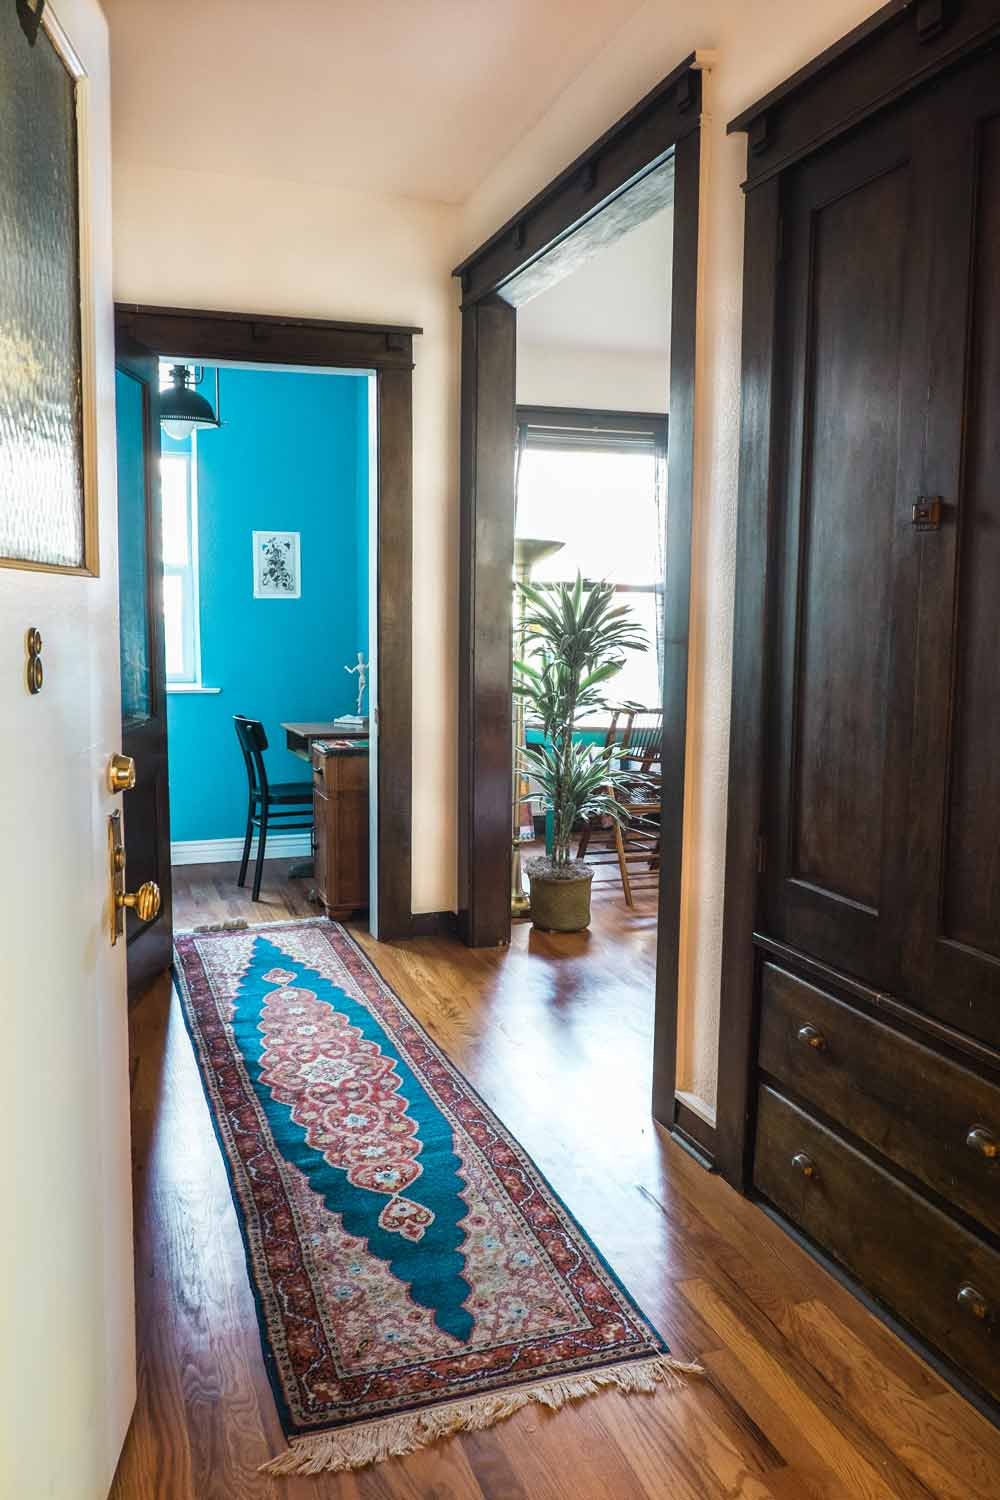 Before & After: A Fun and Affordable Treasure Hunt, on Design*Sponge